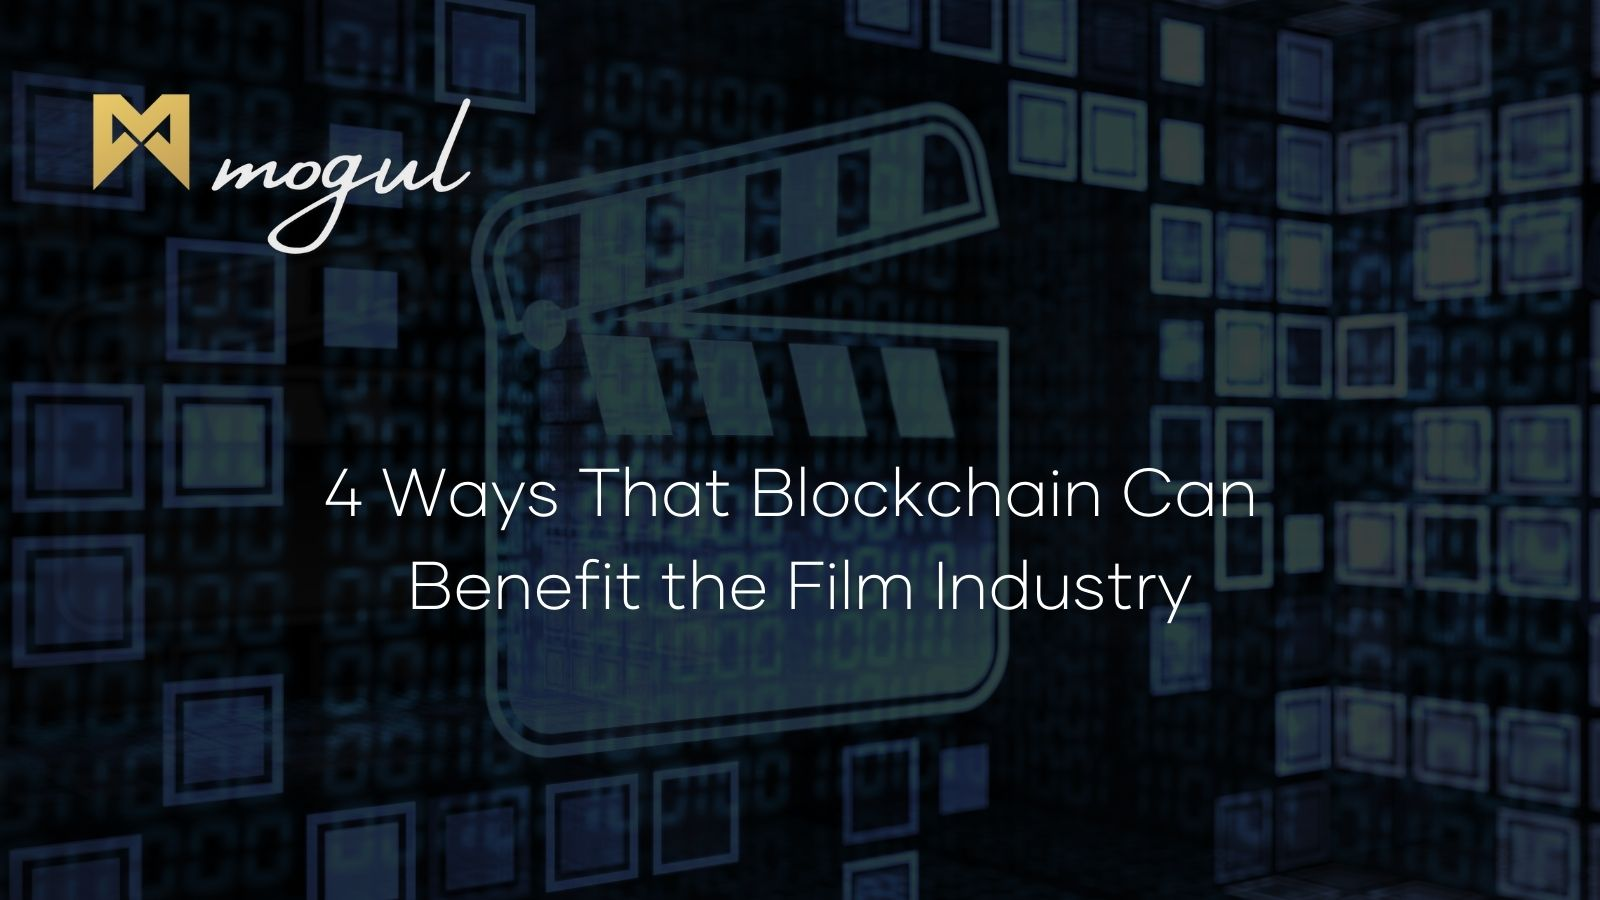 4 Ways That Blockchain Can Benefit the Film Industry